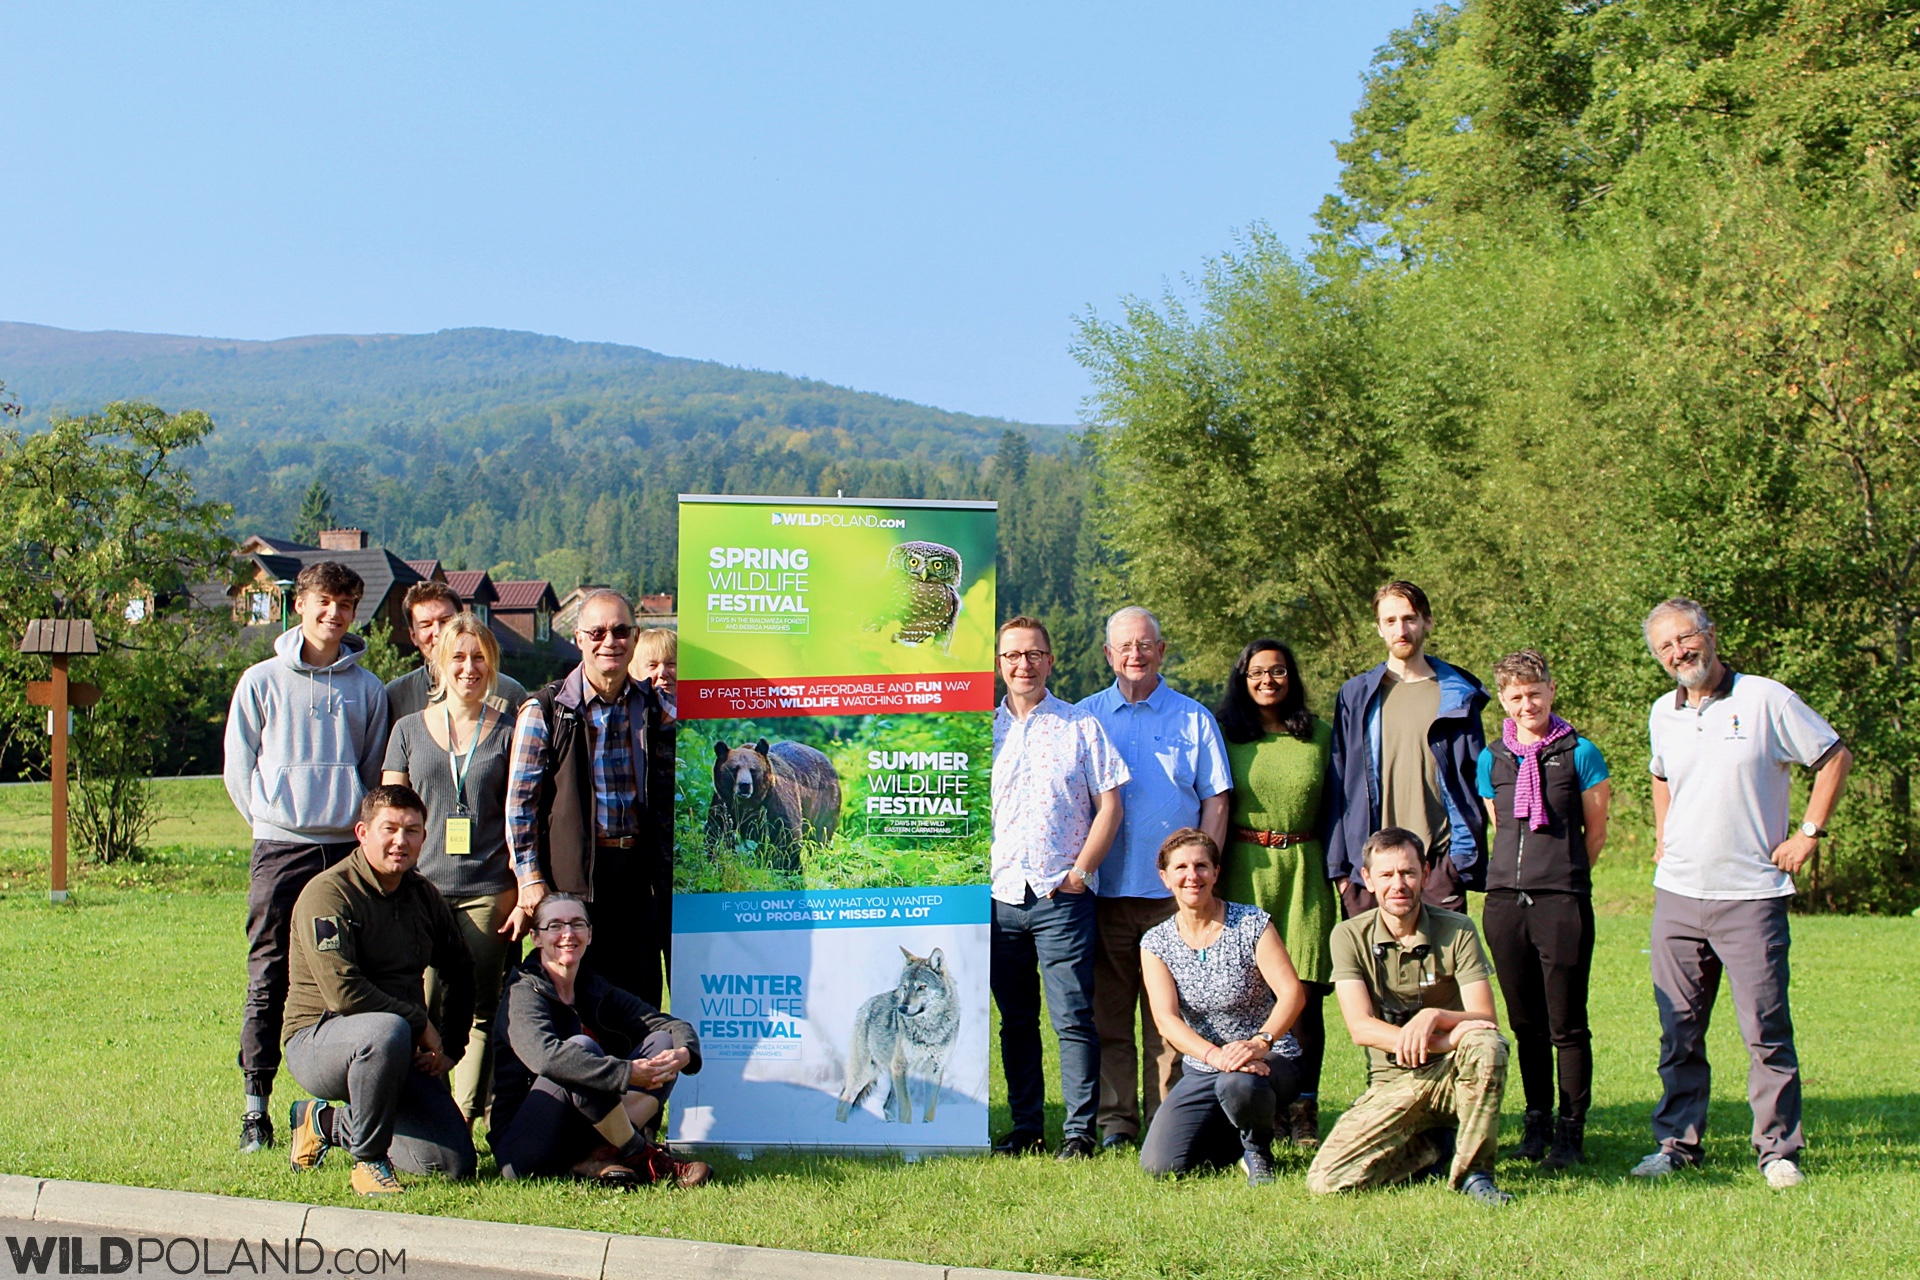 Summer Wildlife Festival Group in the Bieszczady Mts, Eastern Carpathians